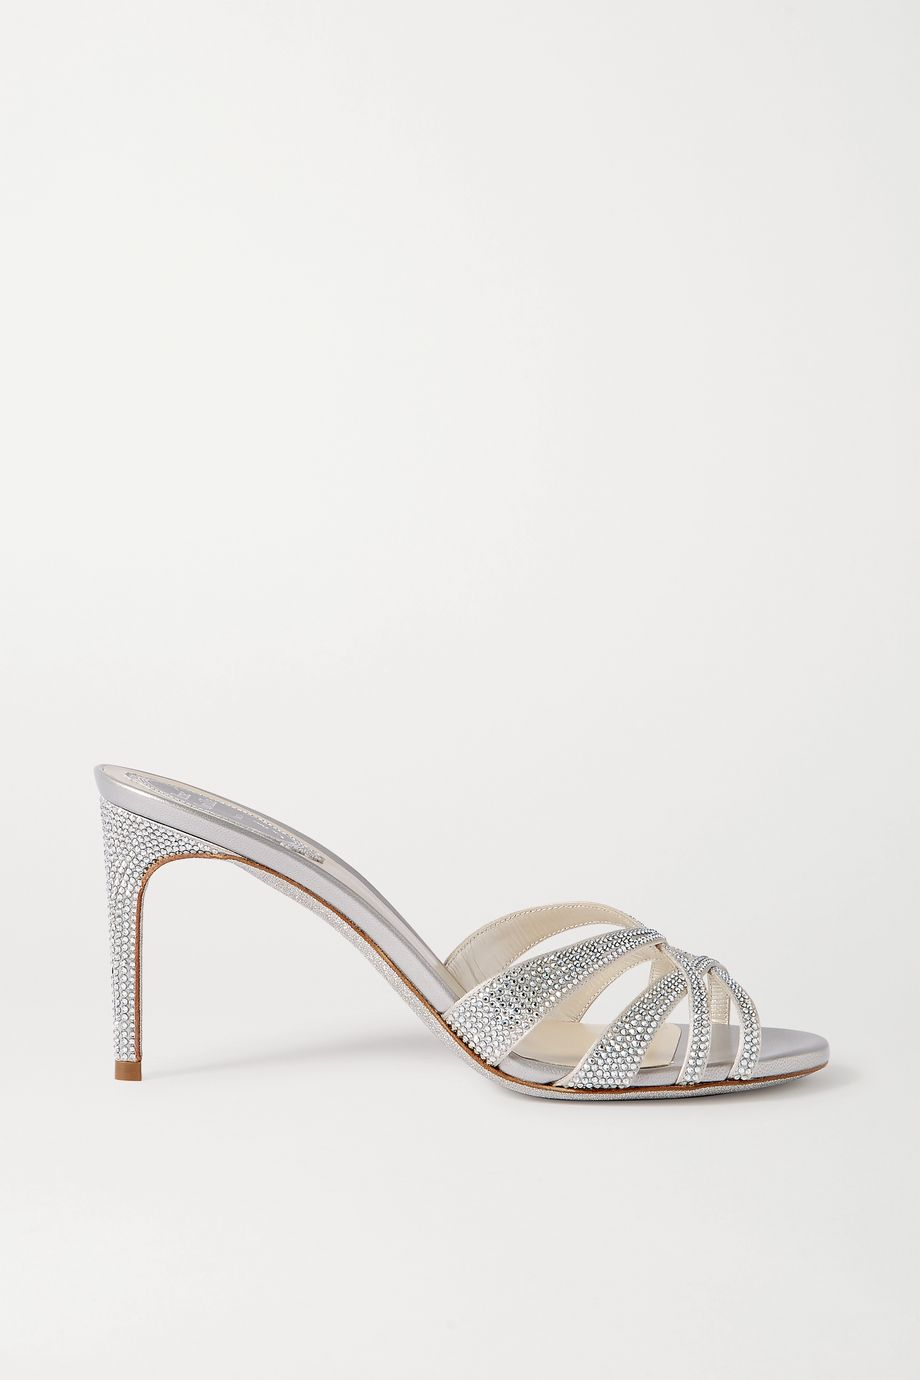 René Caovilla Crystal-embellished satin and leather mules